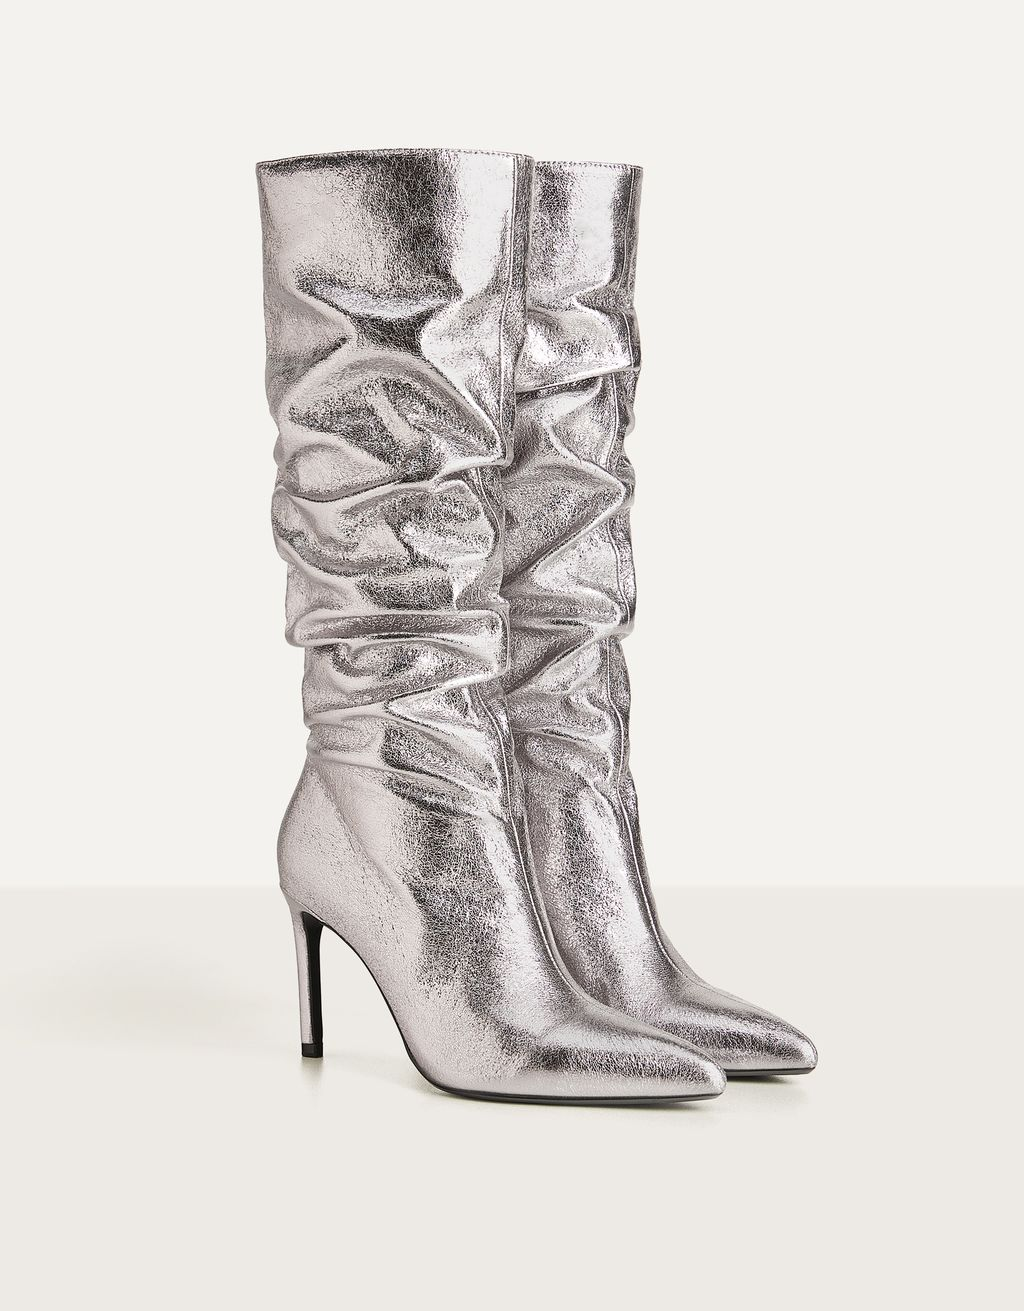 Creased metallic high heel boots